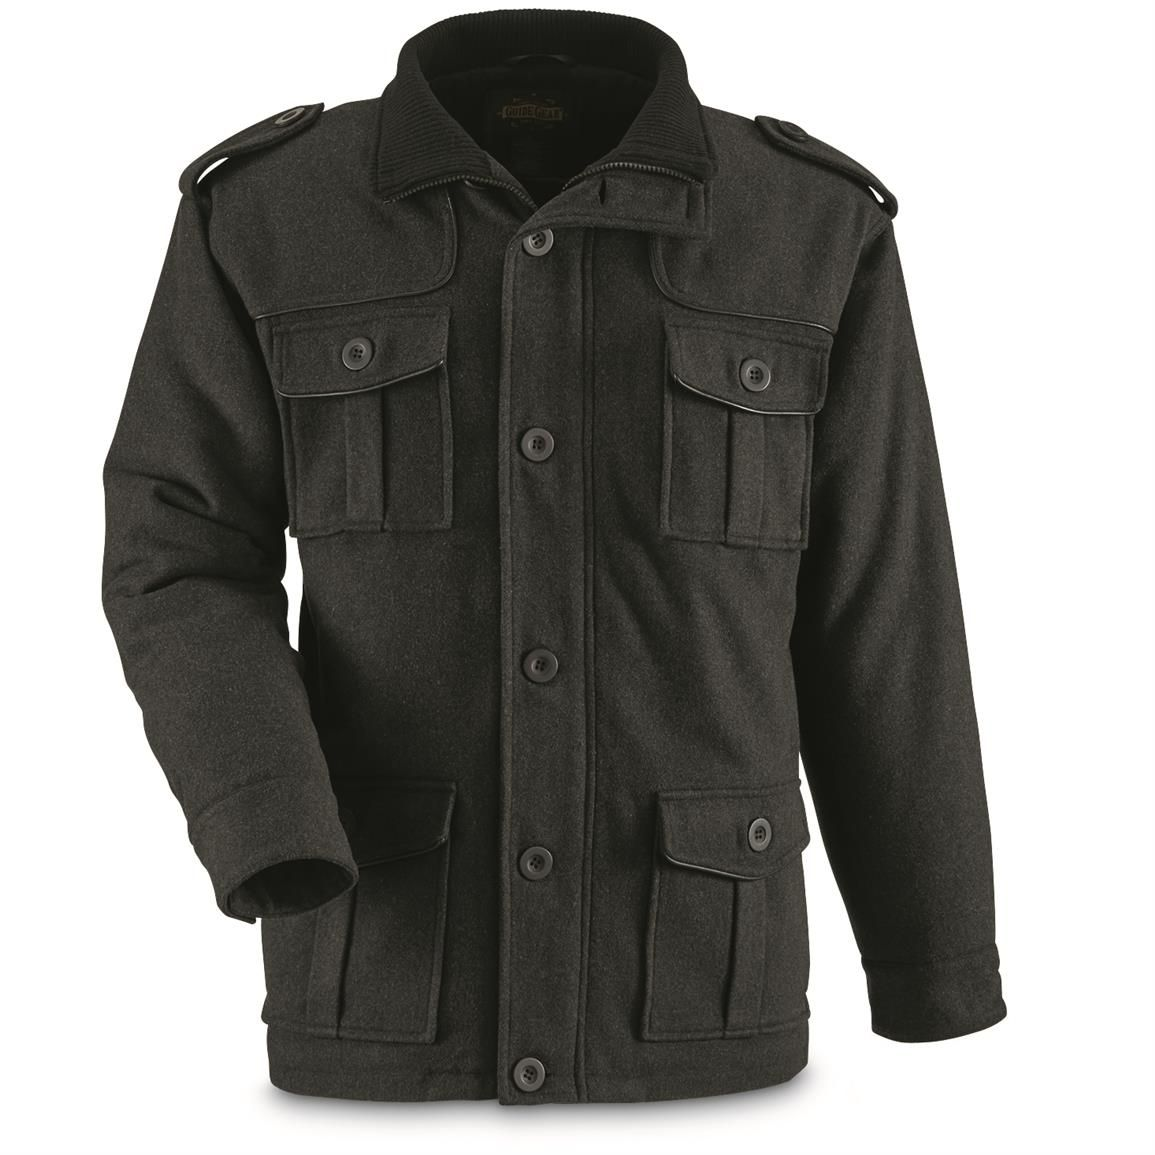 Guide Gear Men's Military Style Jacket | Military style jackets ...